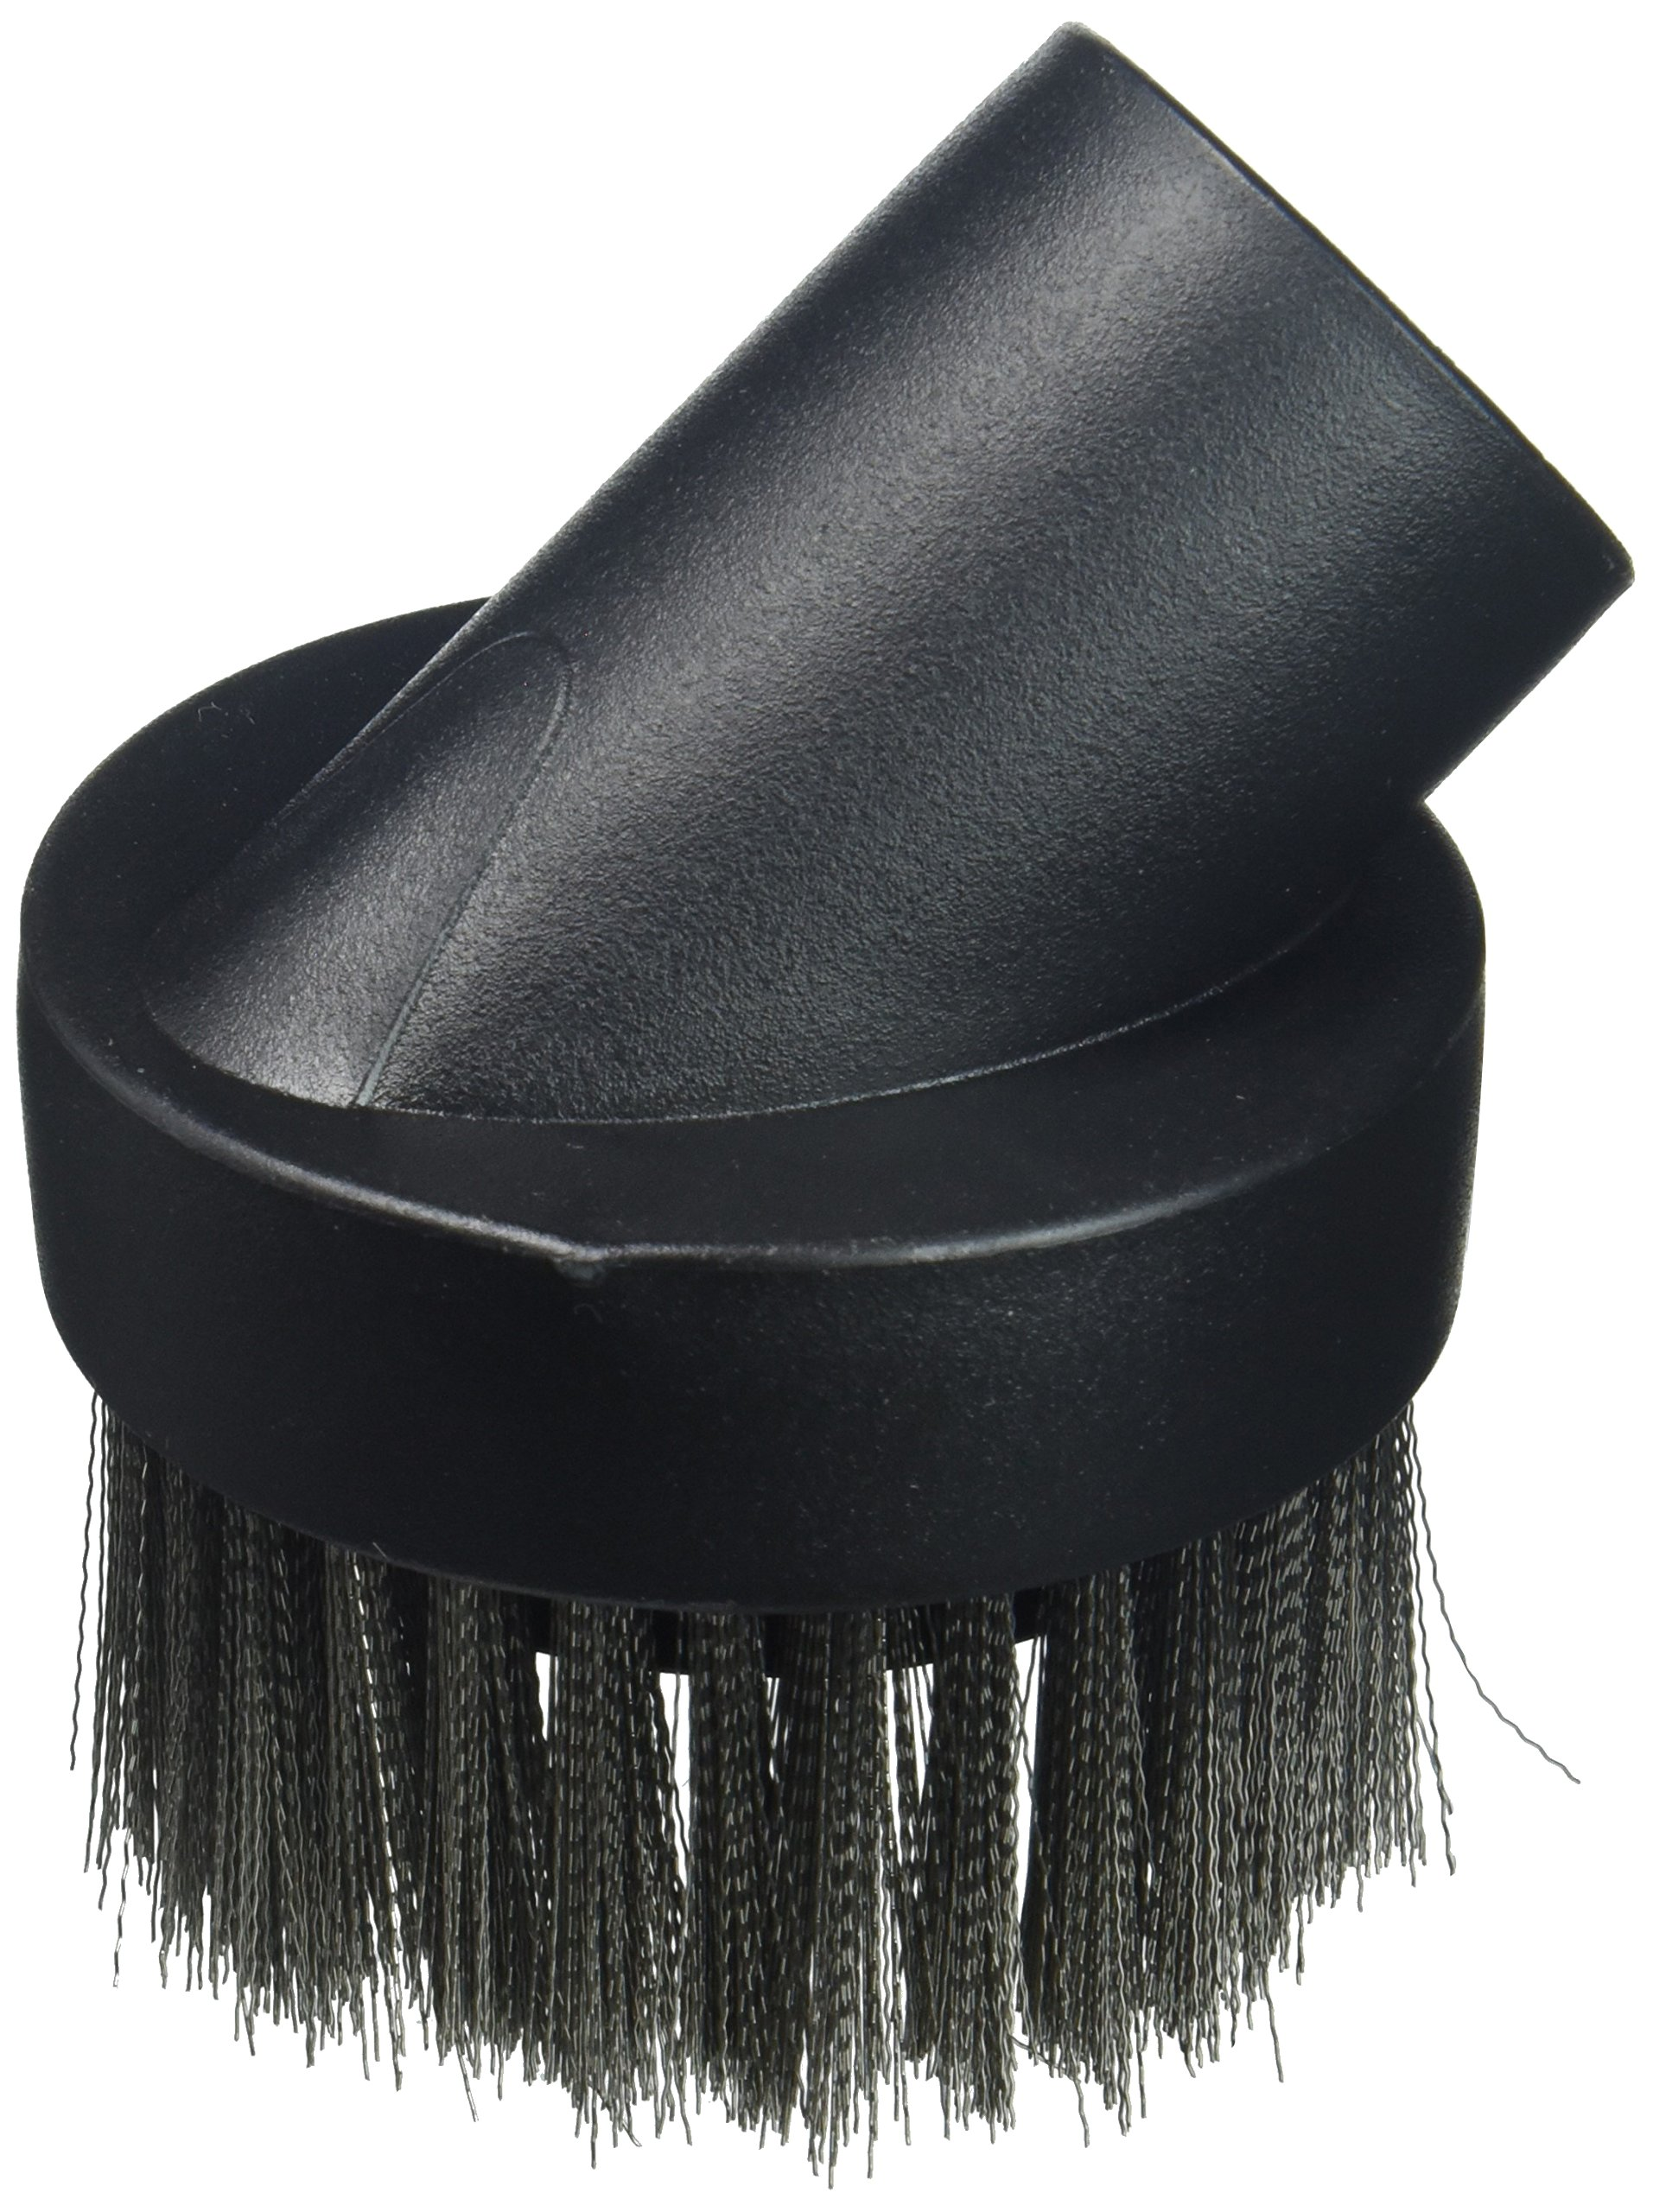 Dustless Technologies 14113 Ash Vacuum Wire Brush Cleaning Tool Round